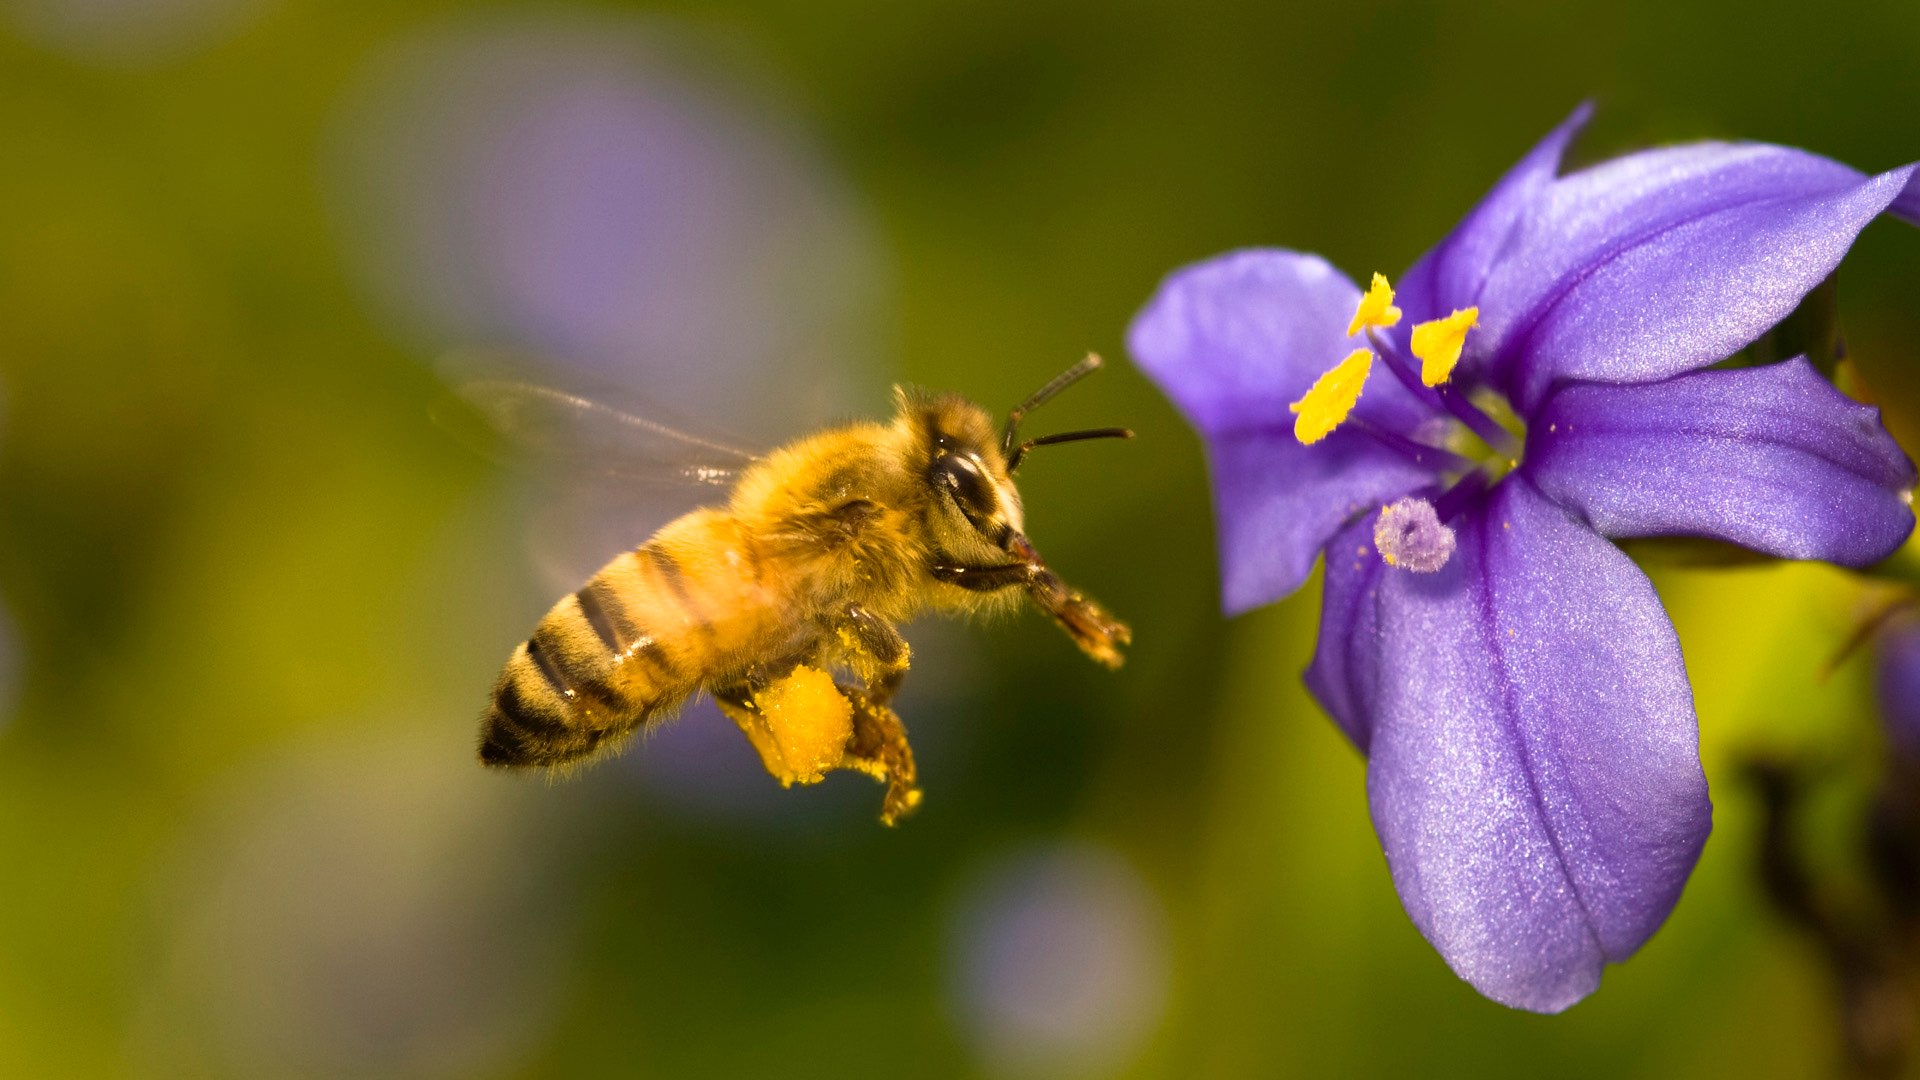 Honey bee hovering near a flower